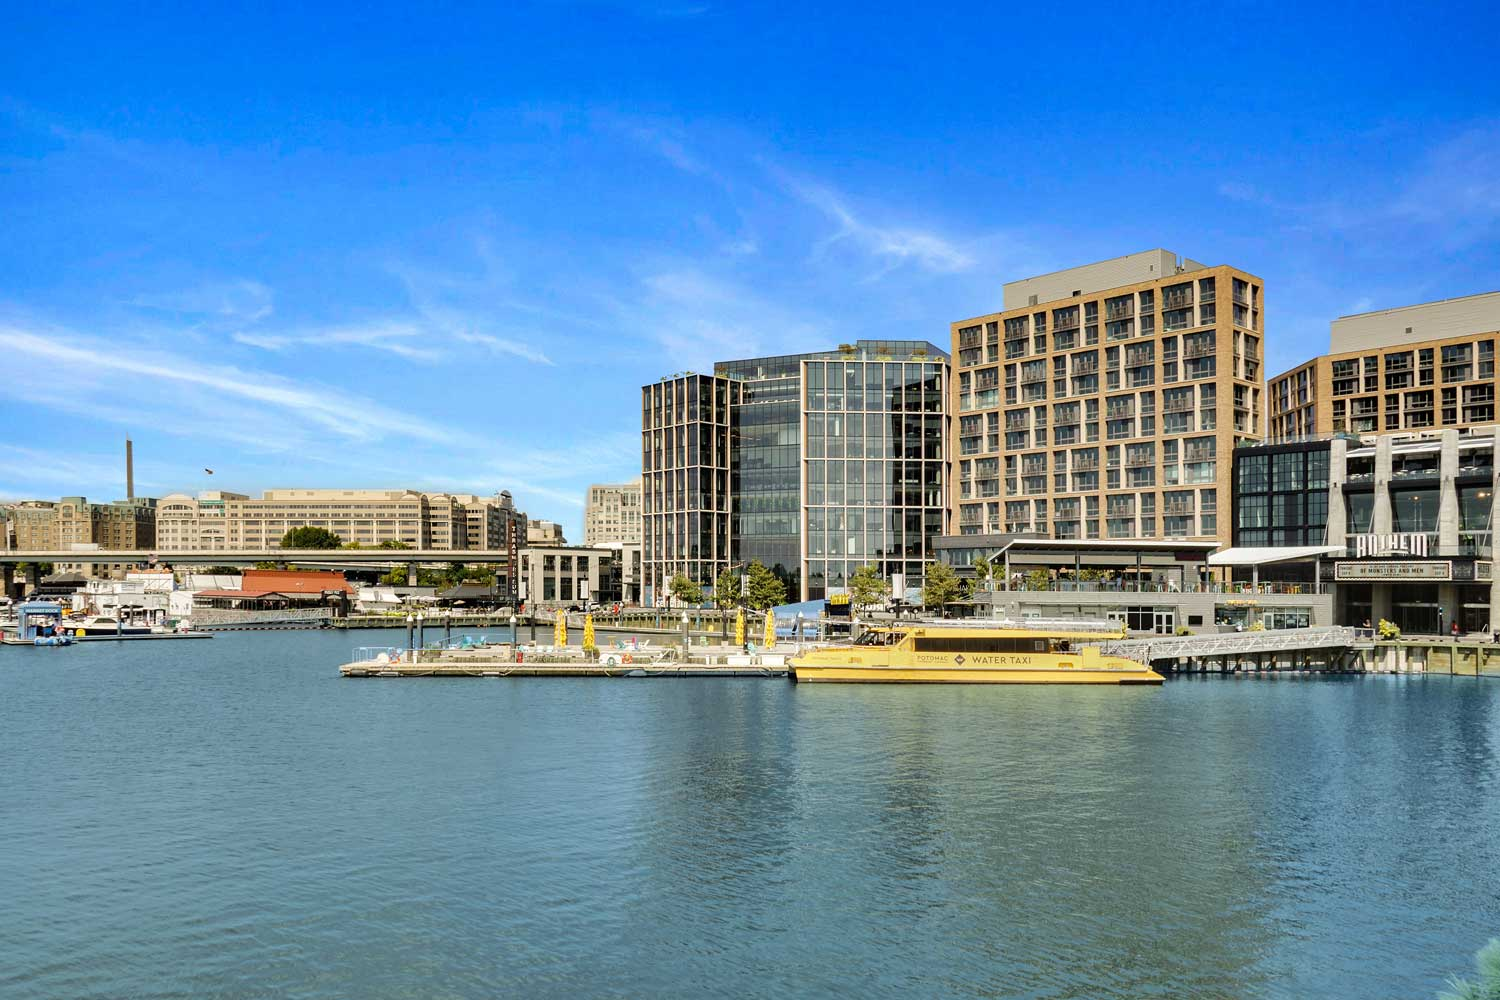 The Wharf DC is 15 minutes from Woodmont Park Apartments in Alexandria, VA